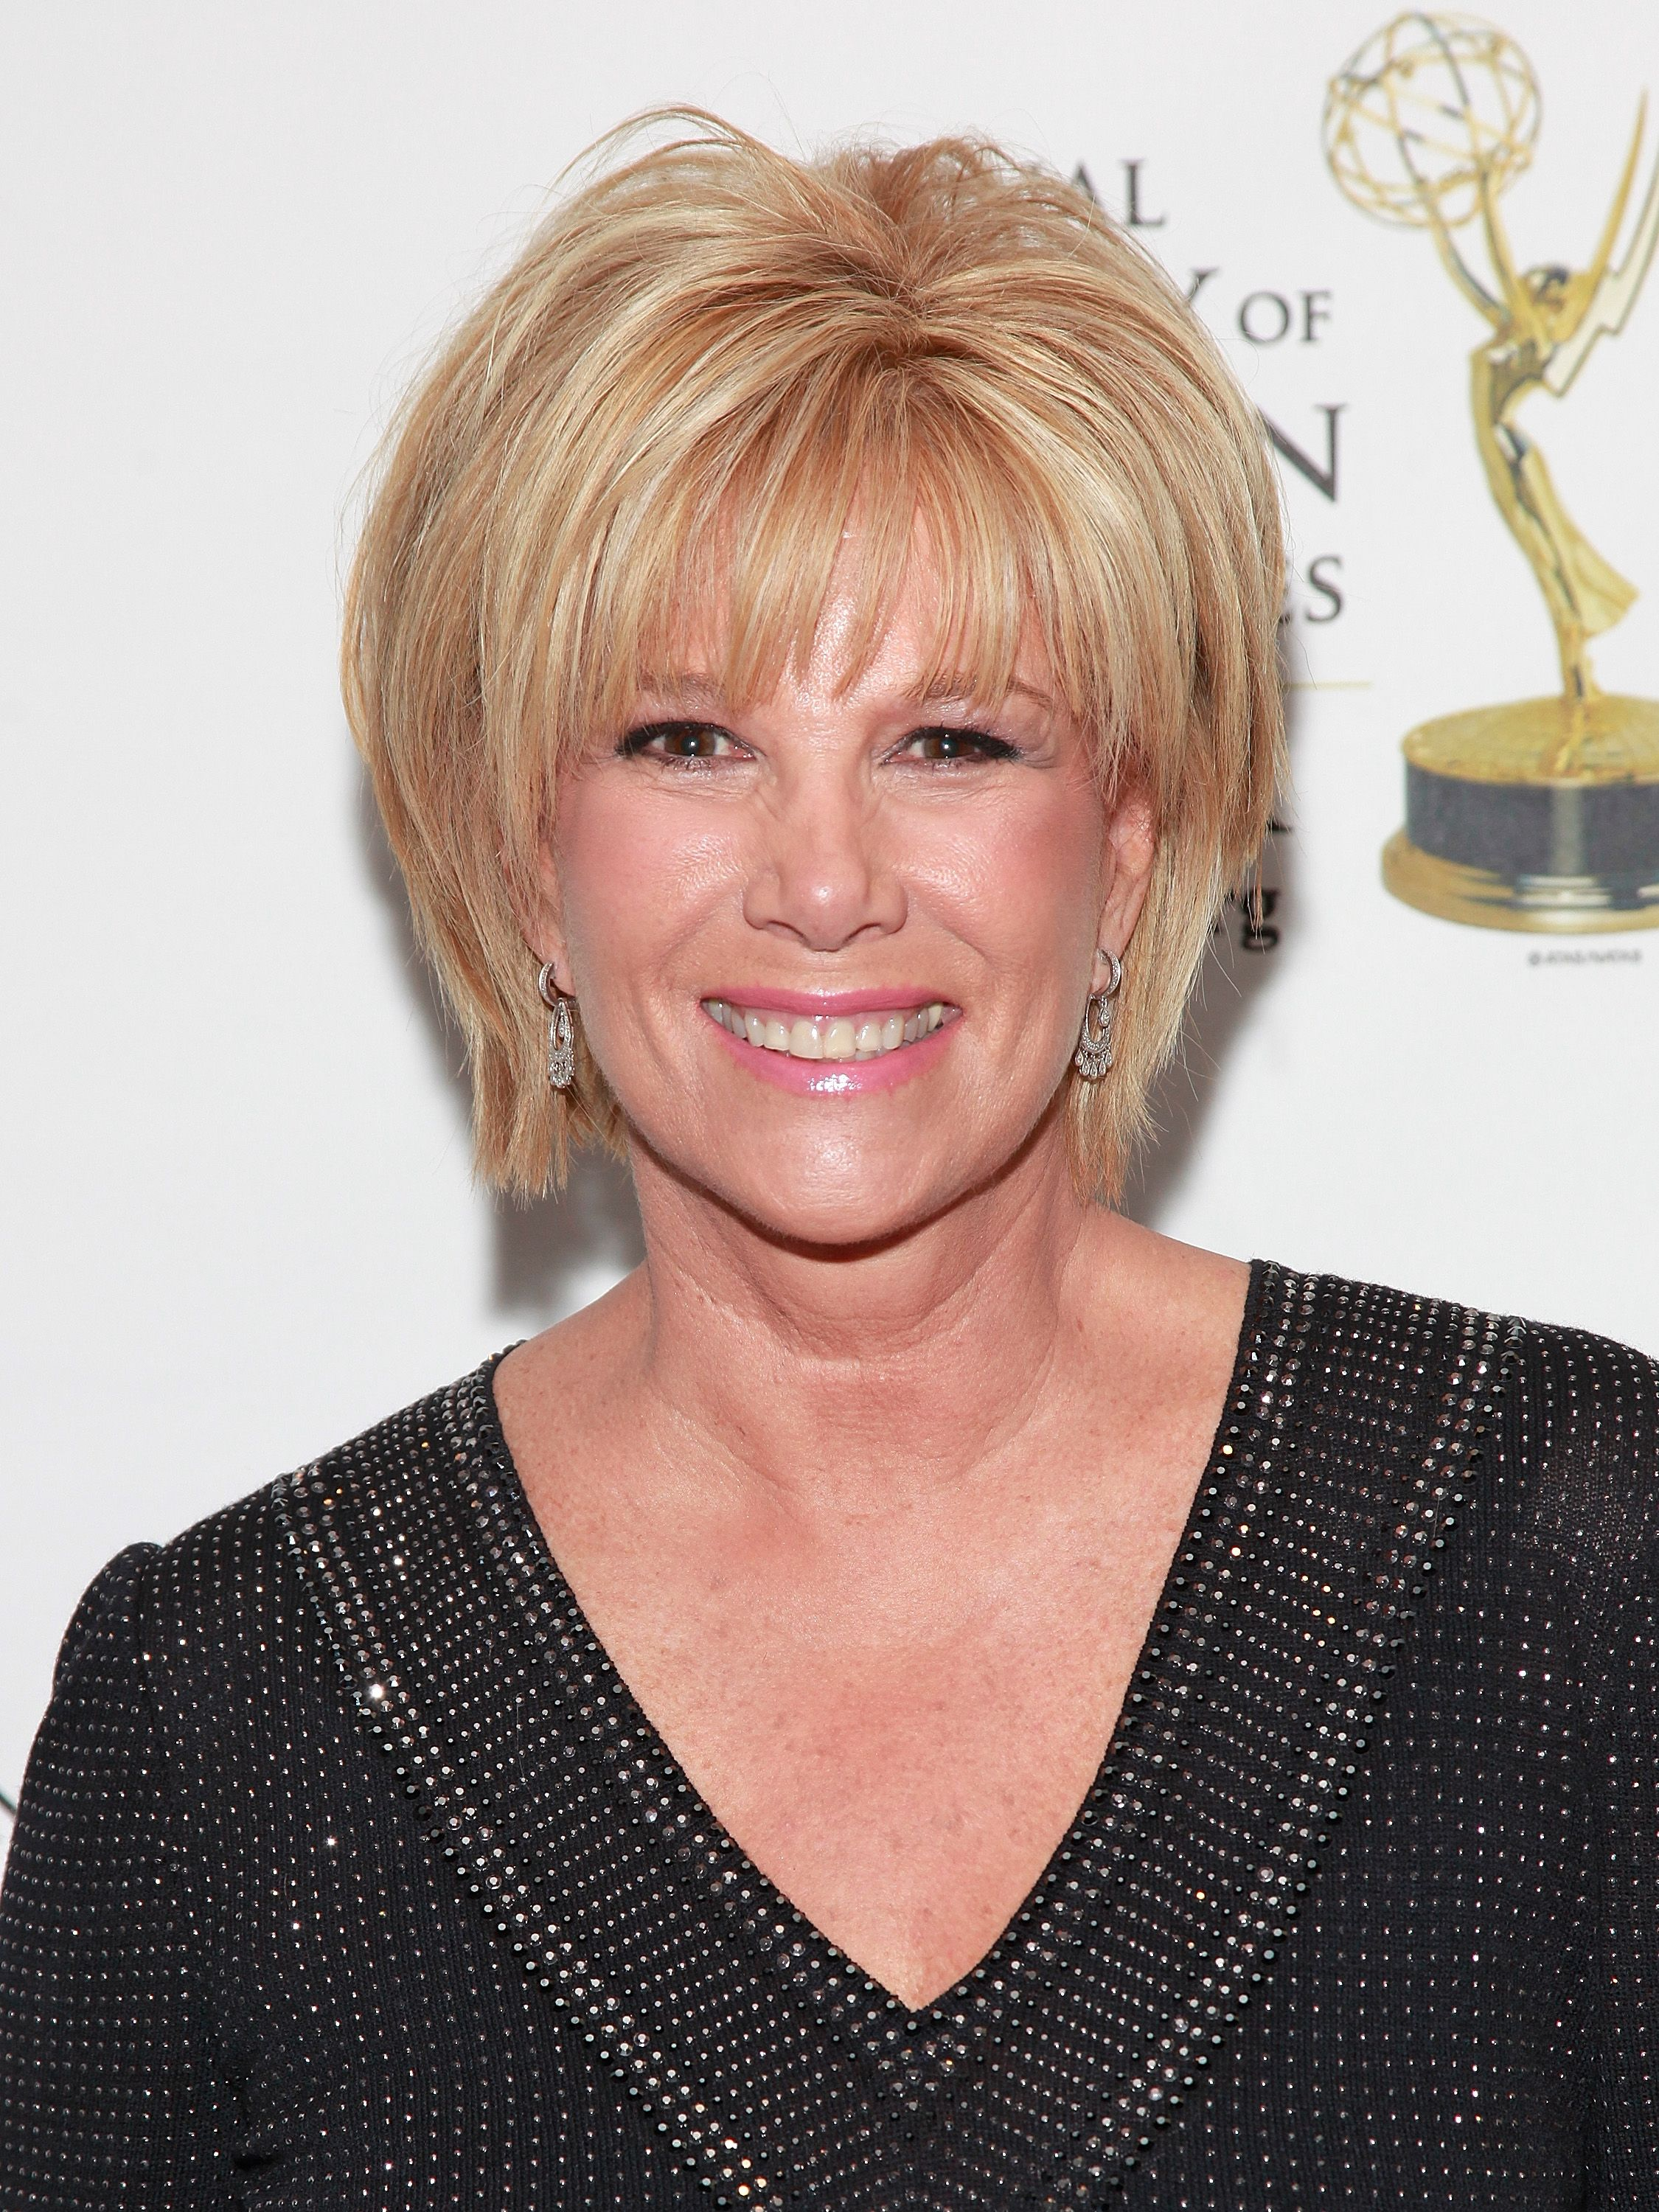 Joan Lunden Gives an Emotional Update on Her going Breast Cancer